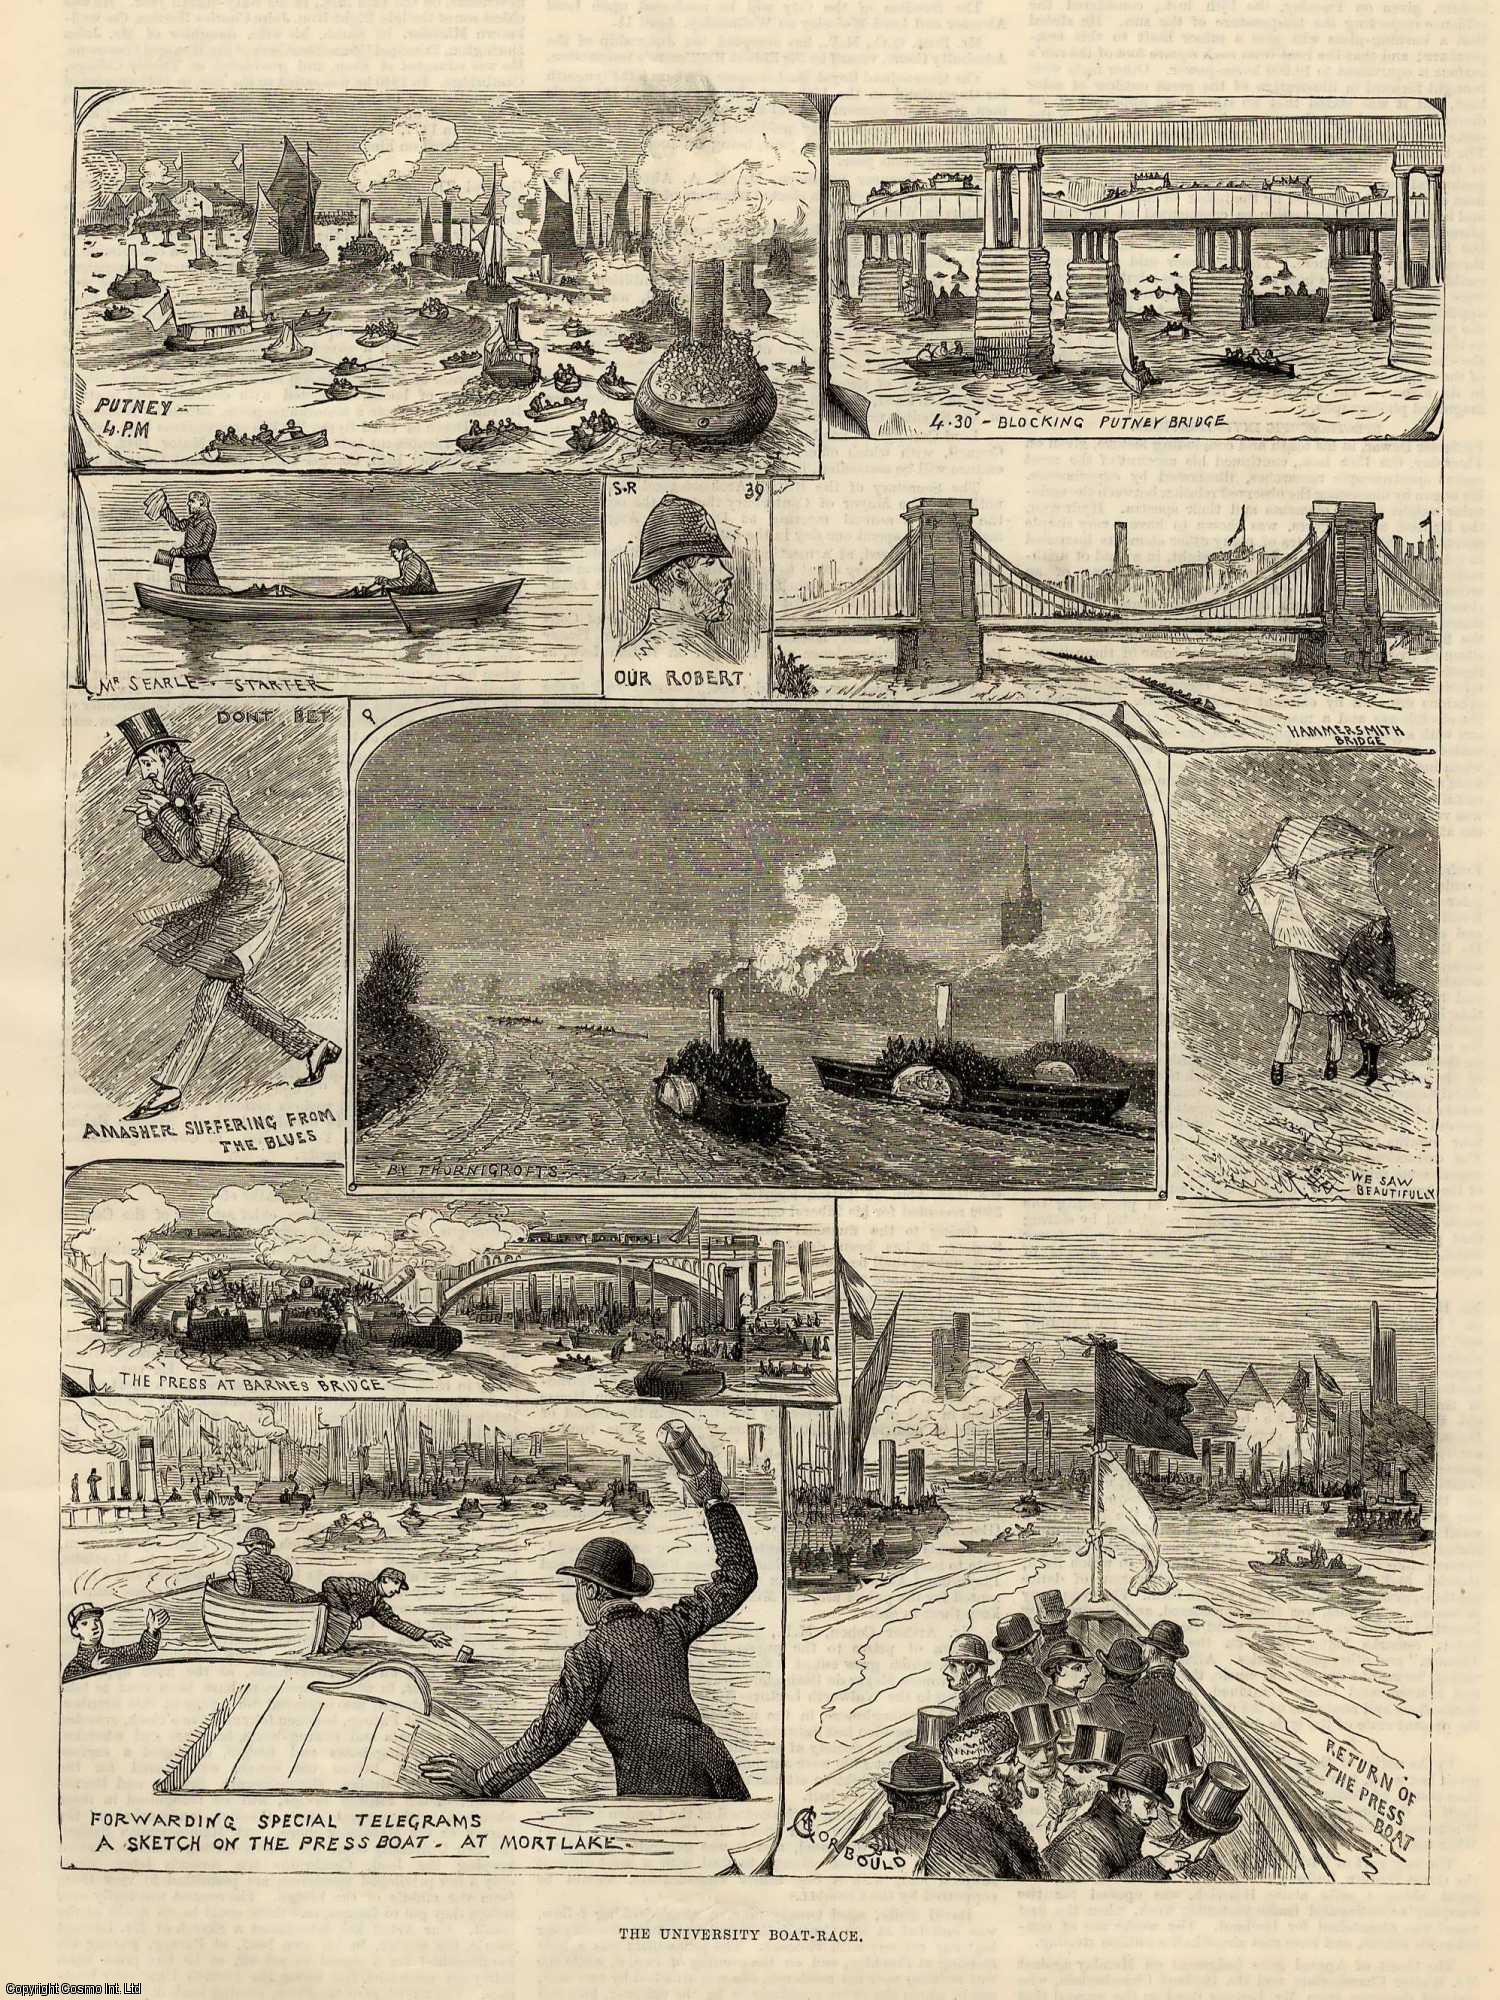 ENGRAVING - The University Boat Race. Oxford-Cambridge. 1883.